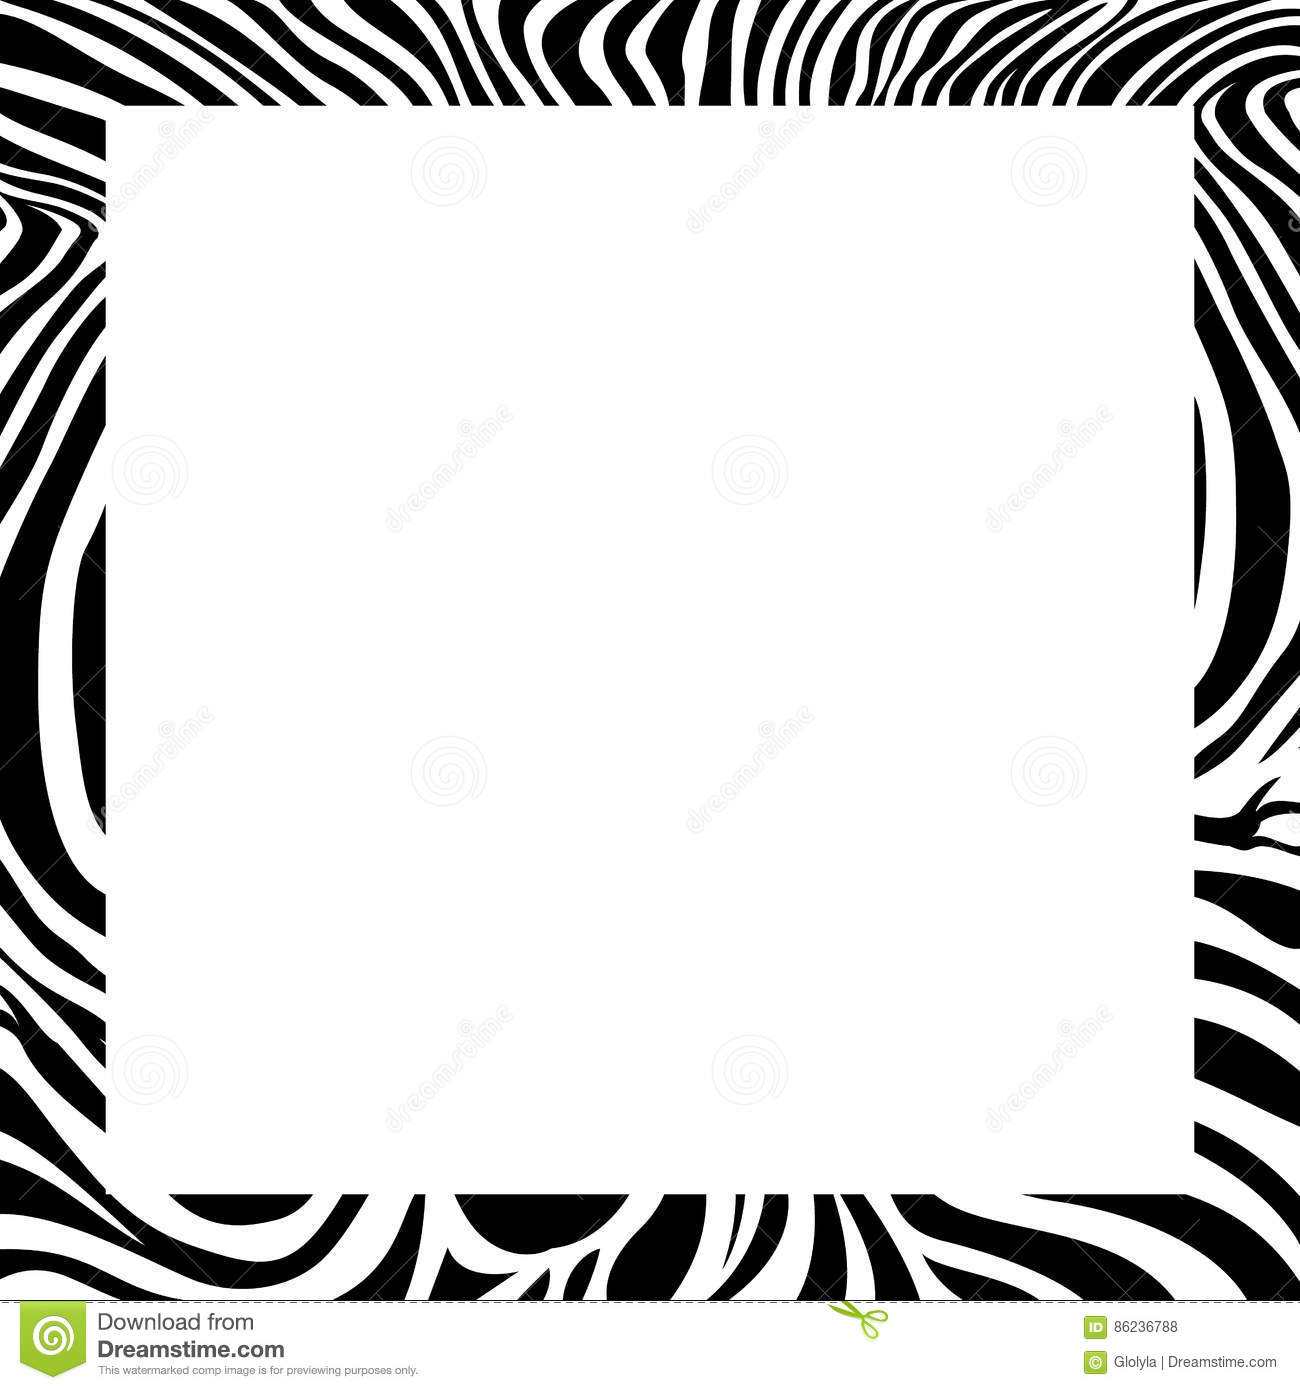 Zebra Print Border Frame Design Stock Vector